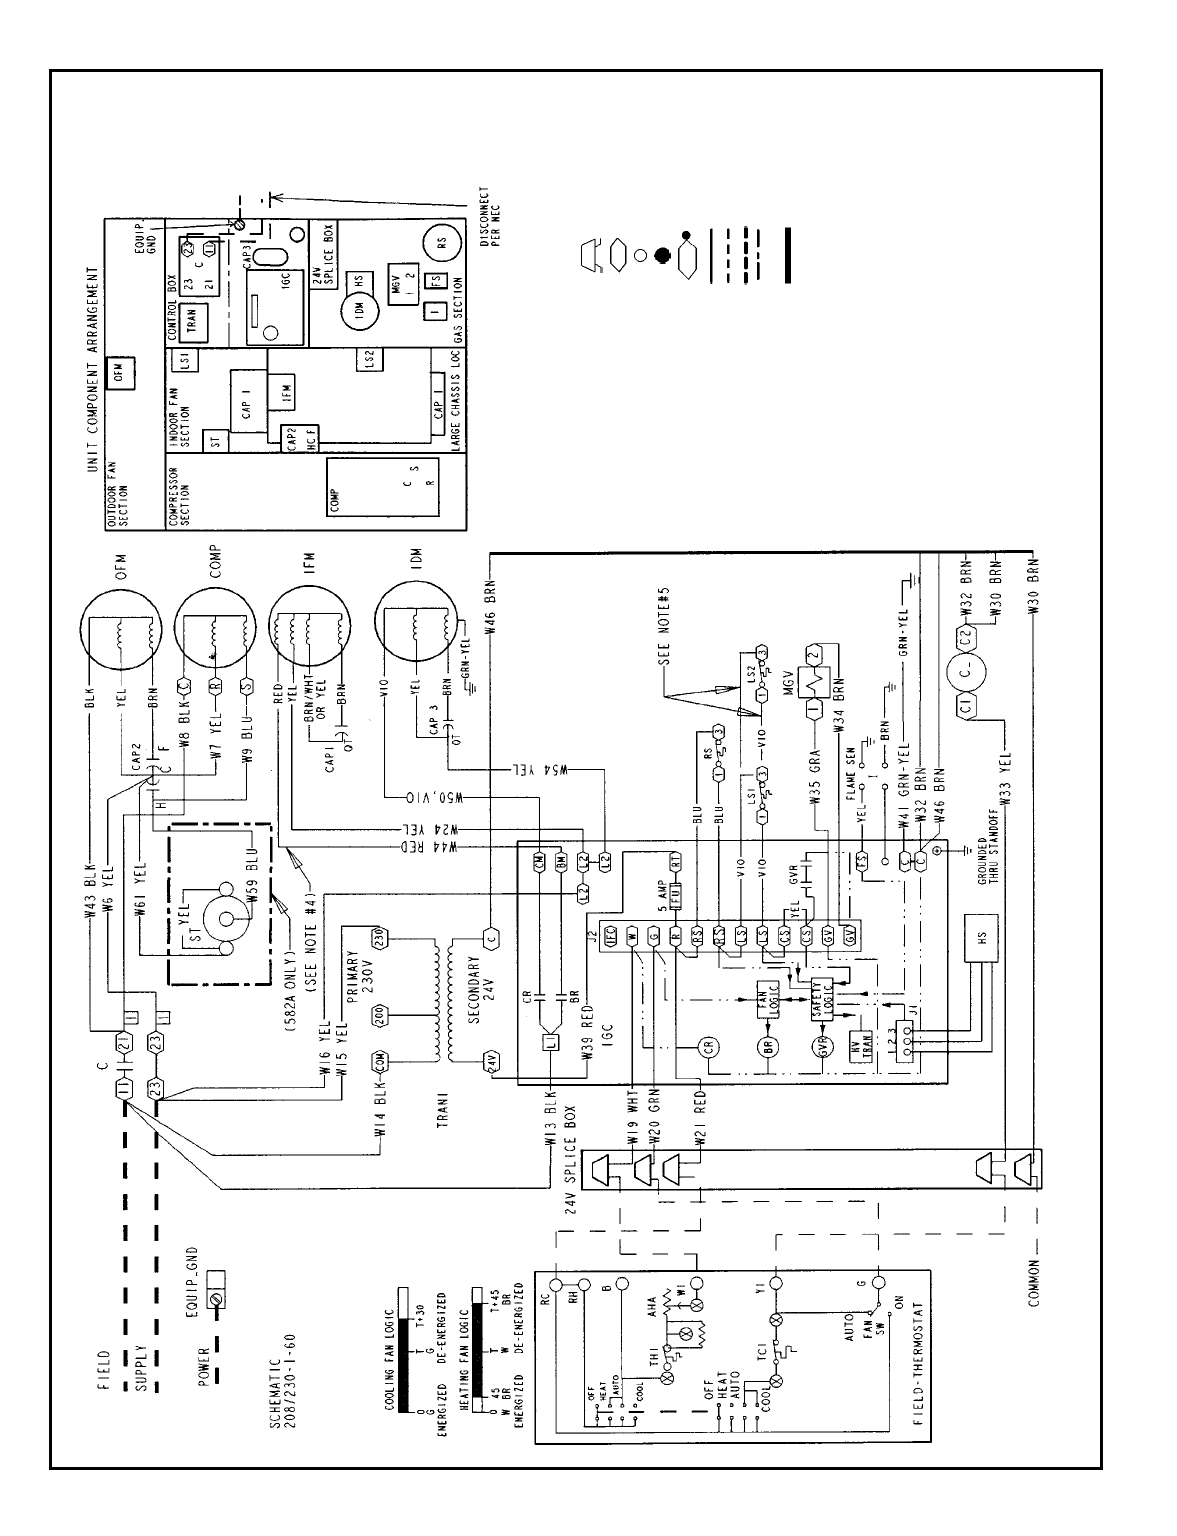 Bryant 582a Typical Wiring Schematic  582a018 230